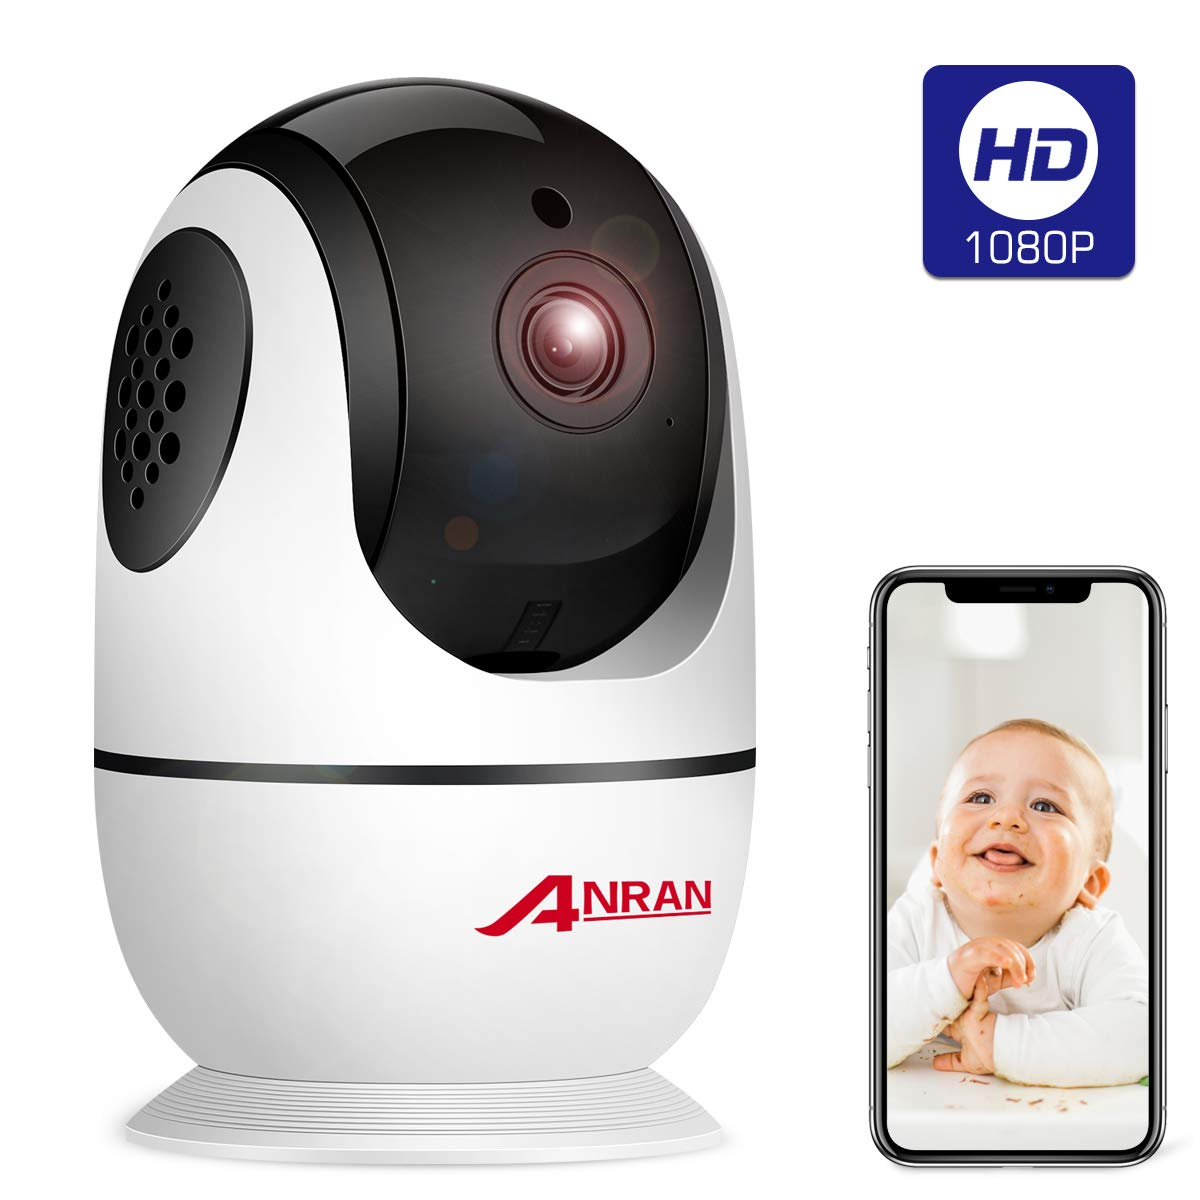 Wireless Security Camera 1080p, Home Smart WiFi Camera Indoor 360 Degree Pan/Tilt/for Pet,Elder,Baby Monitor with Panoramic View Night Vision,Two-Way Audio,Motion Detection,2.4G WiFi No TF Card ANRAN by ANRAN